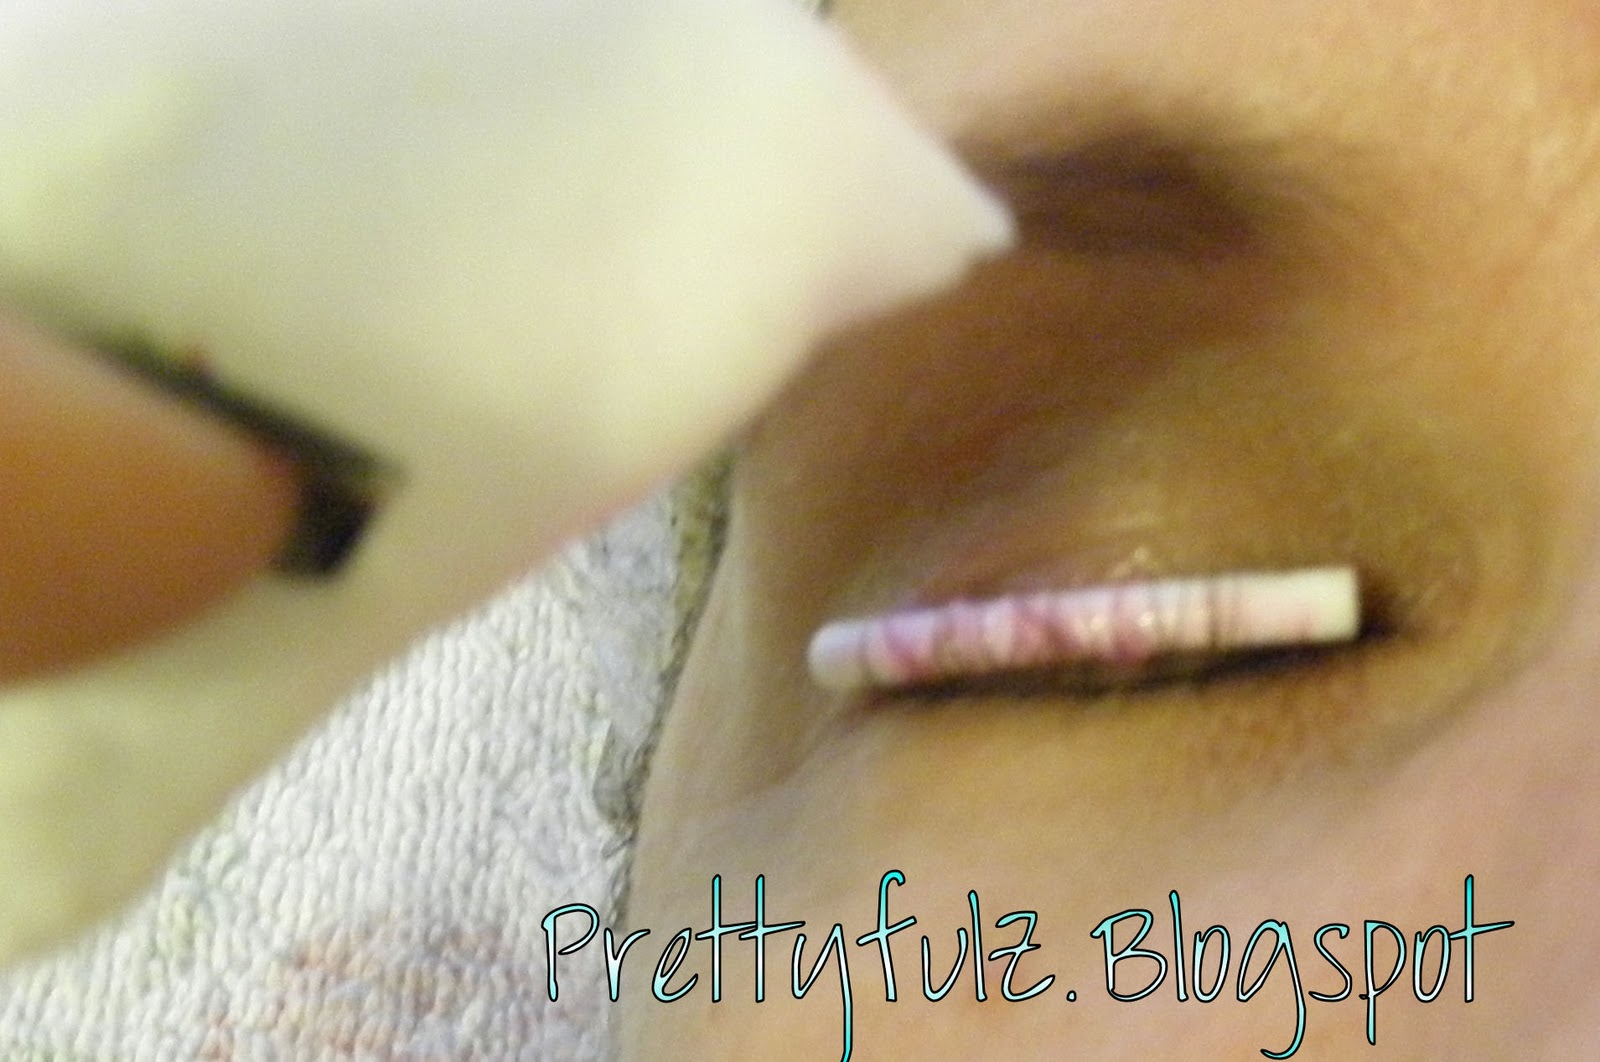 Prettyfulz how to perm your eyelashes at home diy solutioingenieria Gallery